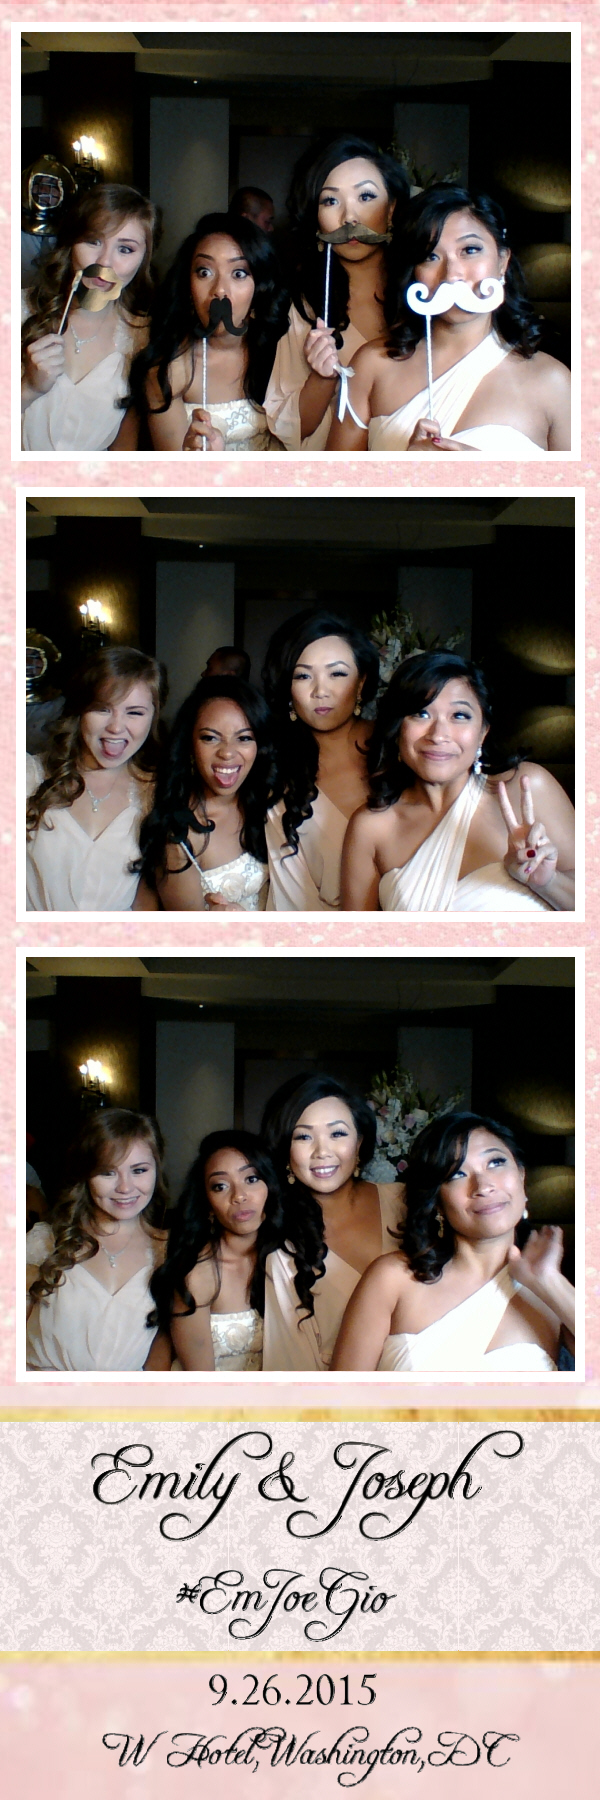 Guest House Events Photo Booth E&J (34).jpg